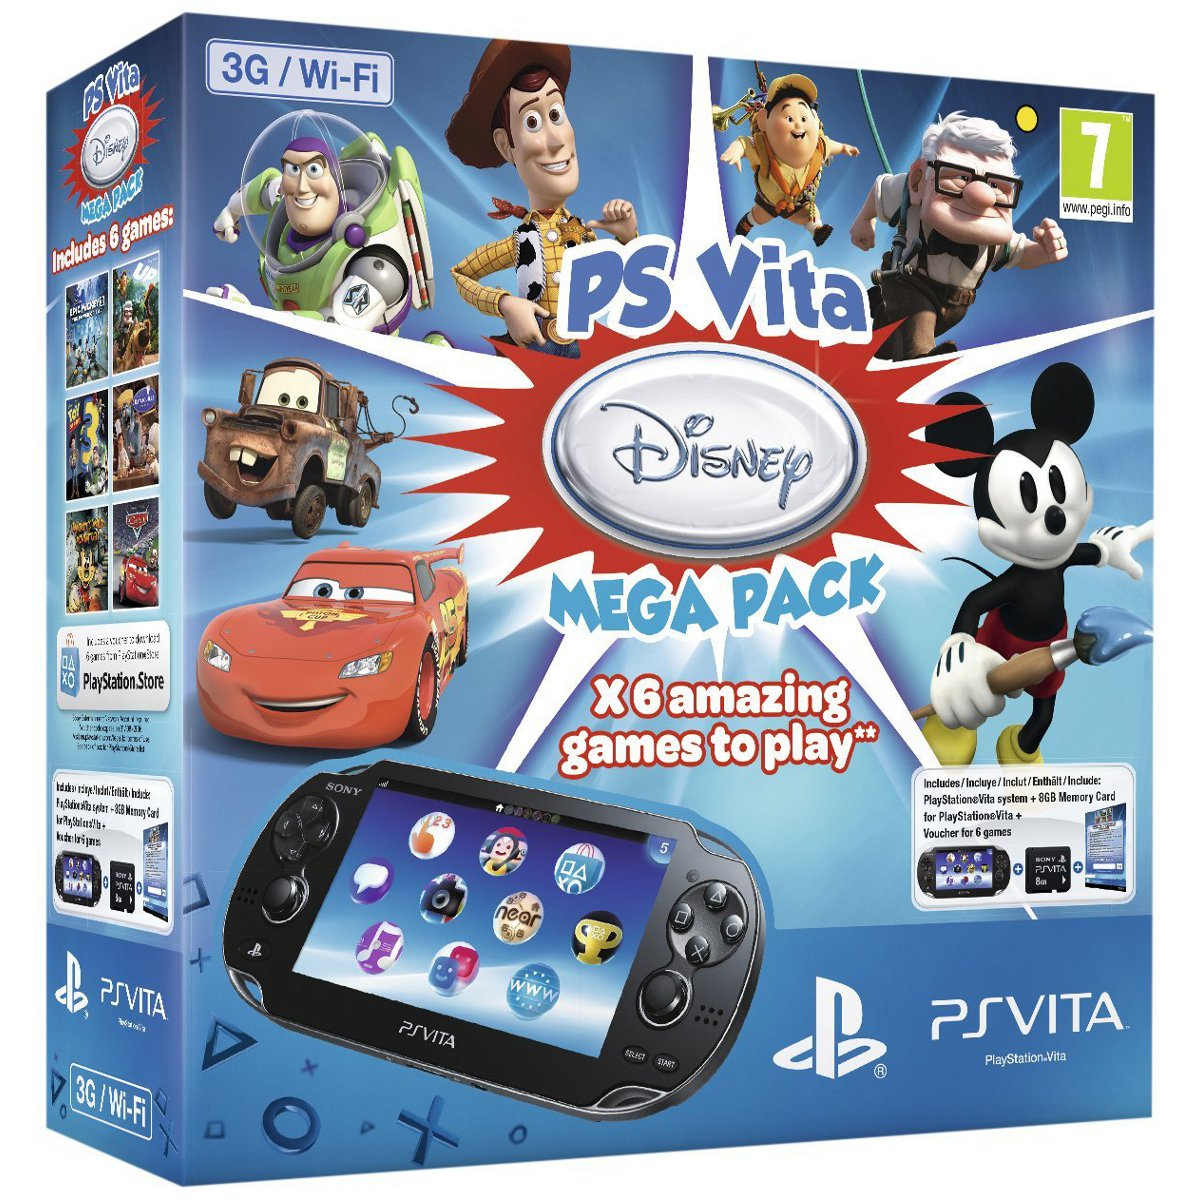 sony ps vita 3g wifi noire 6 jeux carte memoire 8 go sony interactive. Black Bedroom Furniture Sets. Home Design Ideas